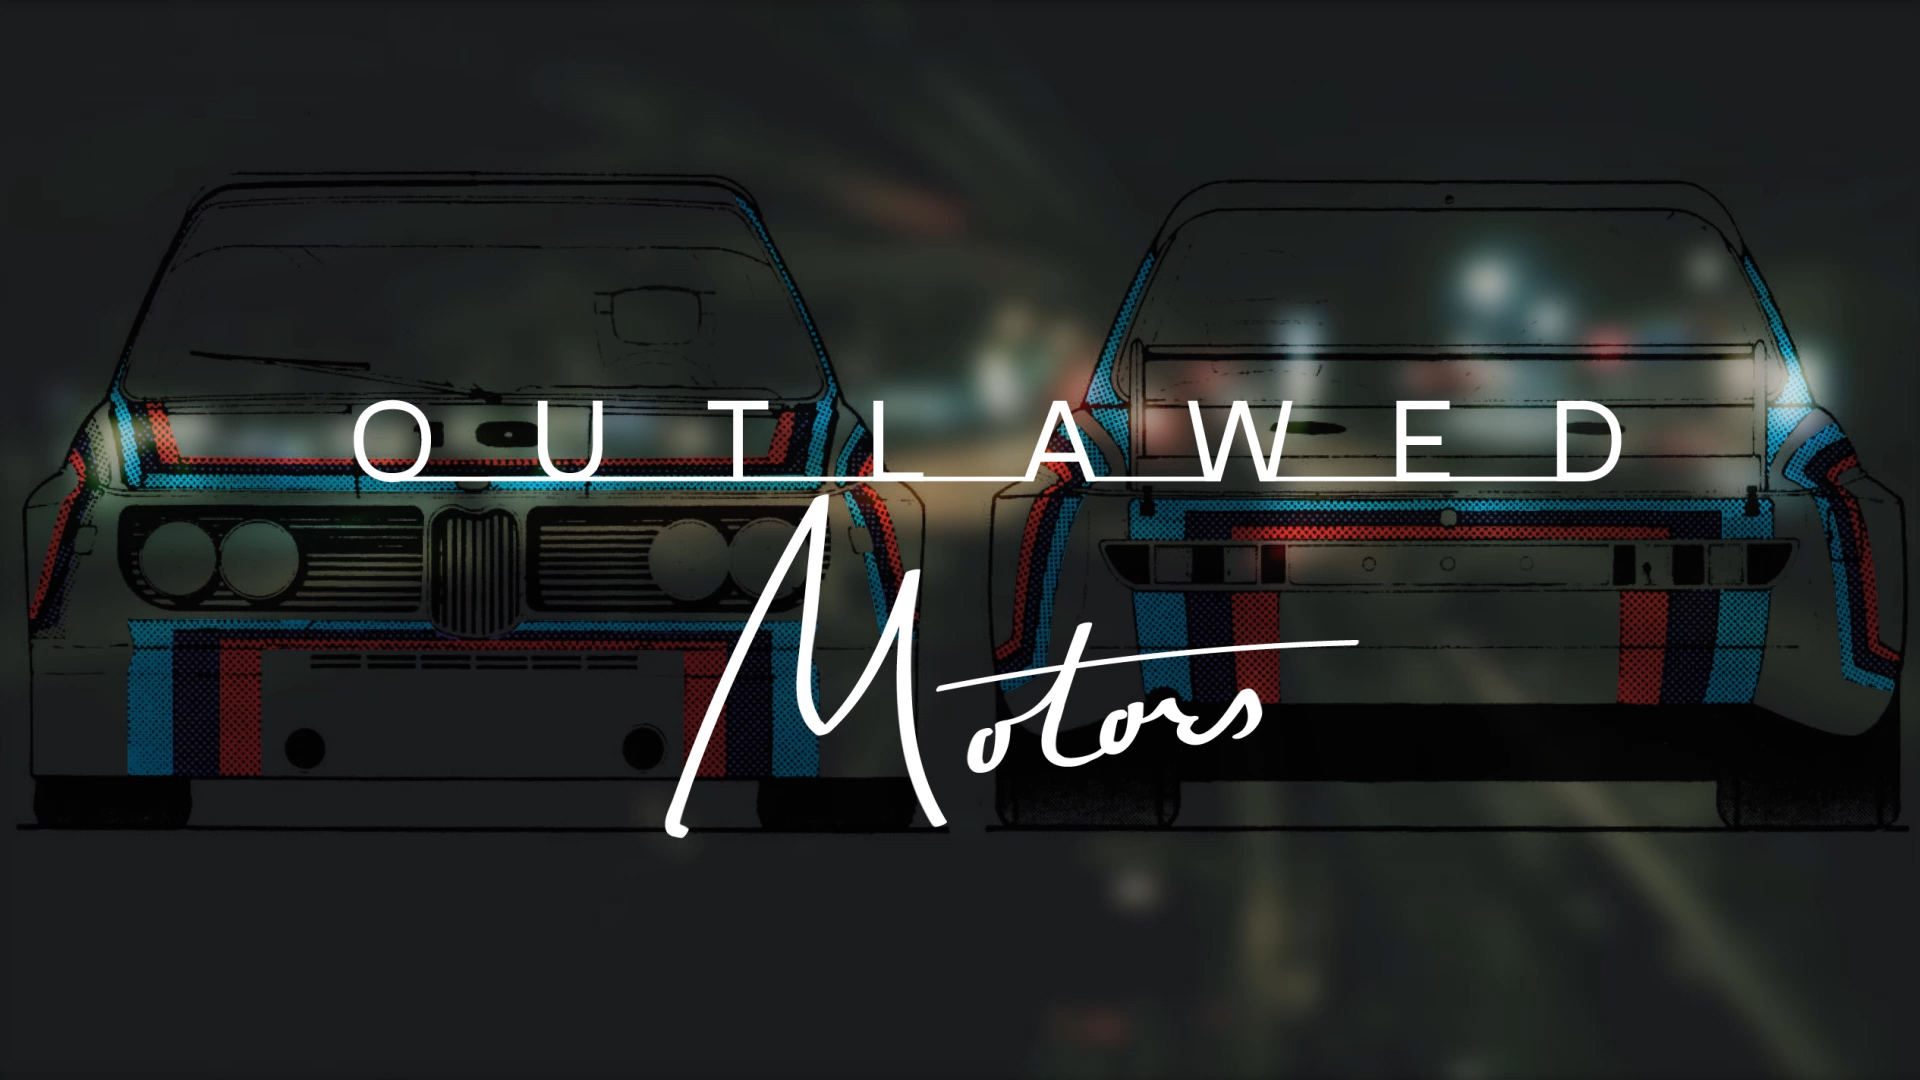 Outlawed Motors